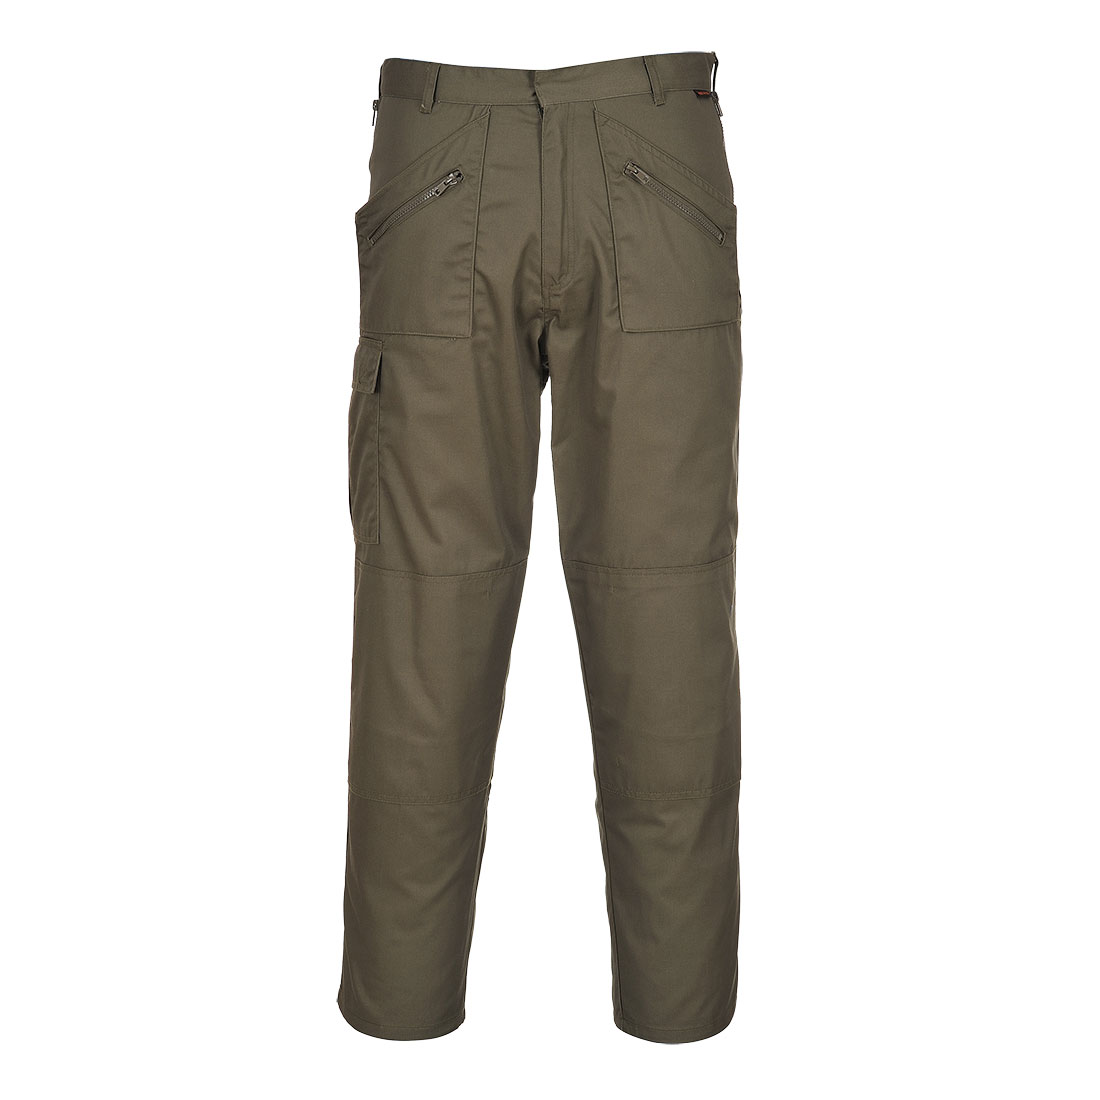 Action Trousers Olive 46R